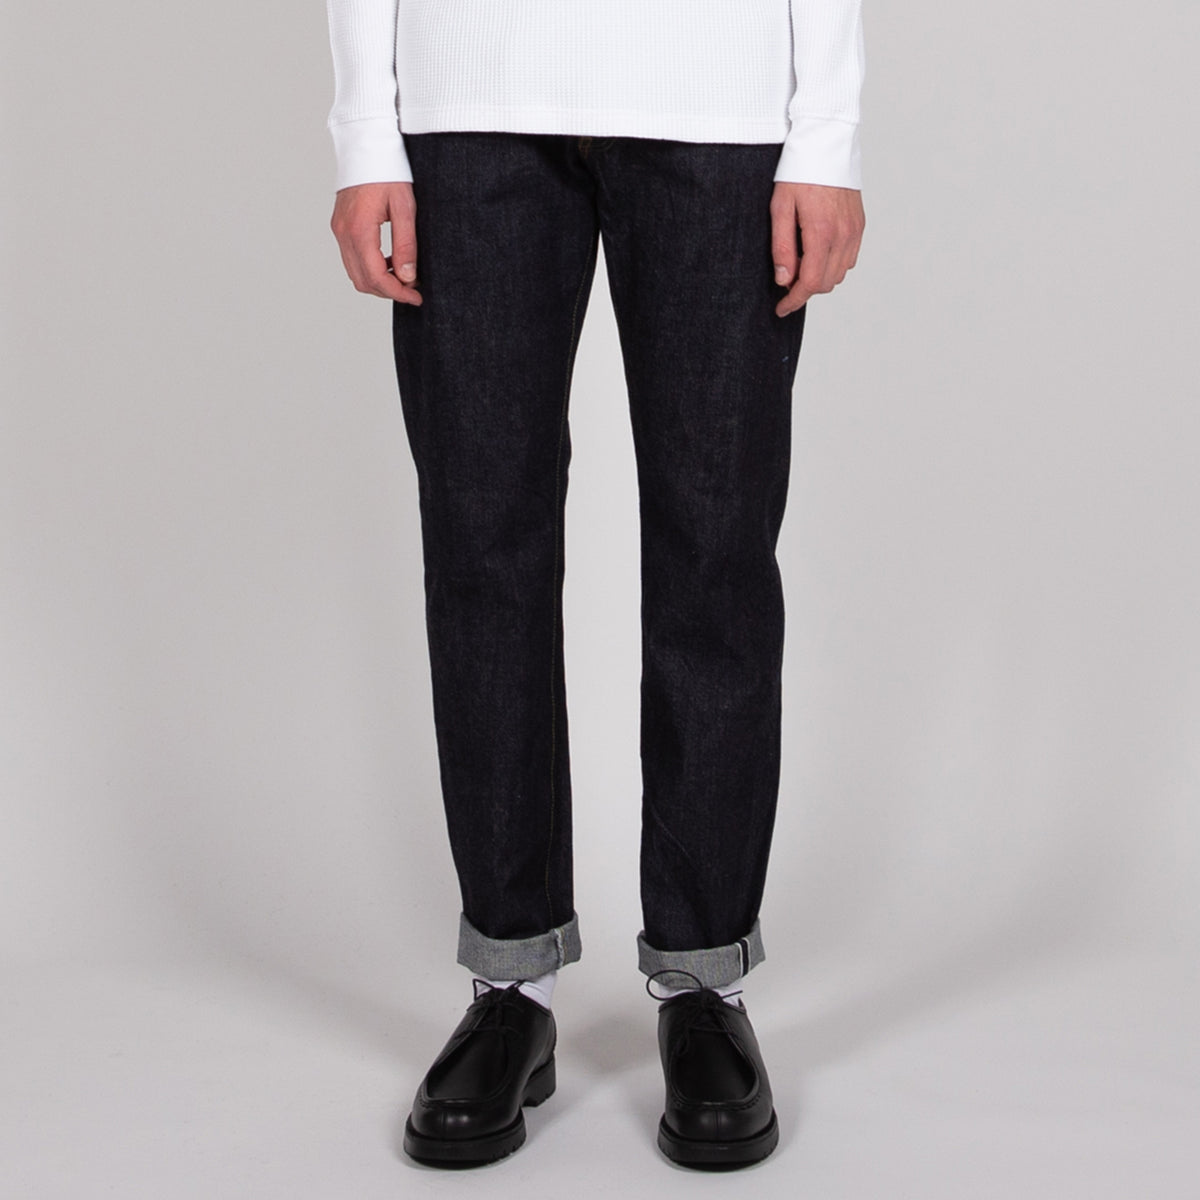 Denim Pant Narrow 5 Pockets - Raw